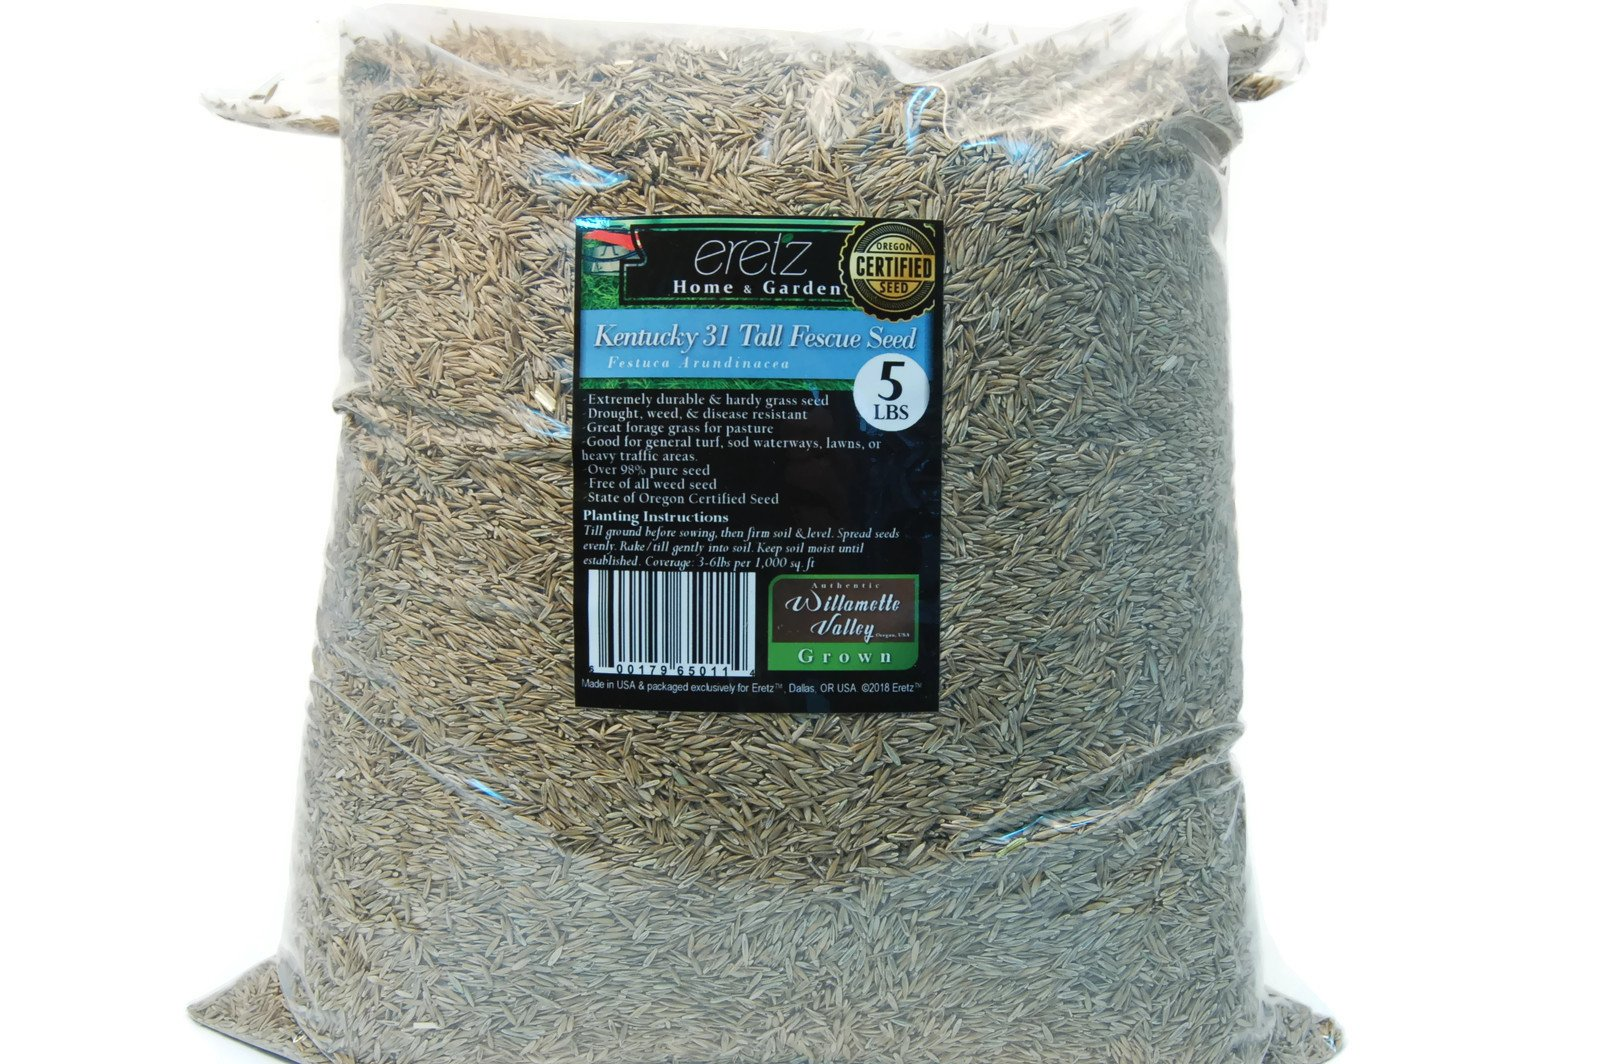 Kentucky K31 Tall Fescue Grass Seed by Eretz - Willamette Valley, Oregon Grown (5lbs)